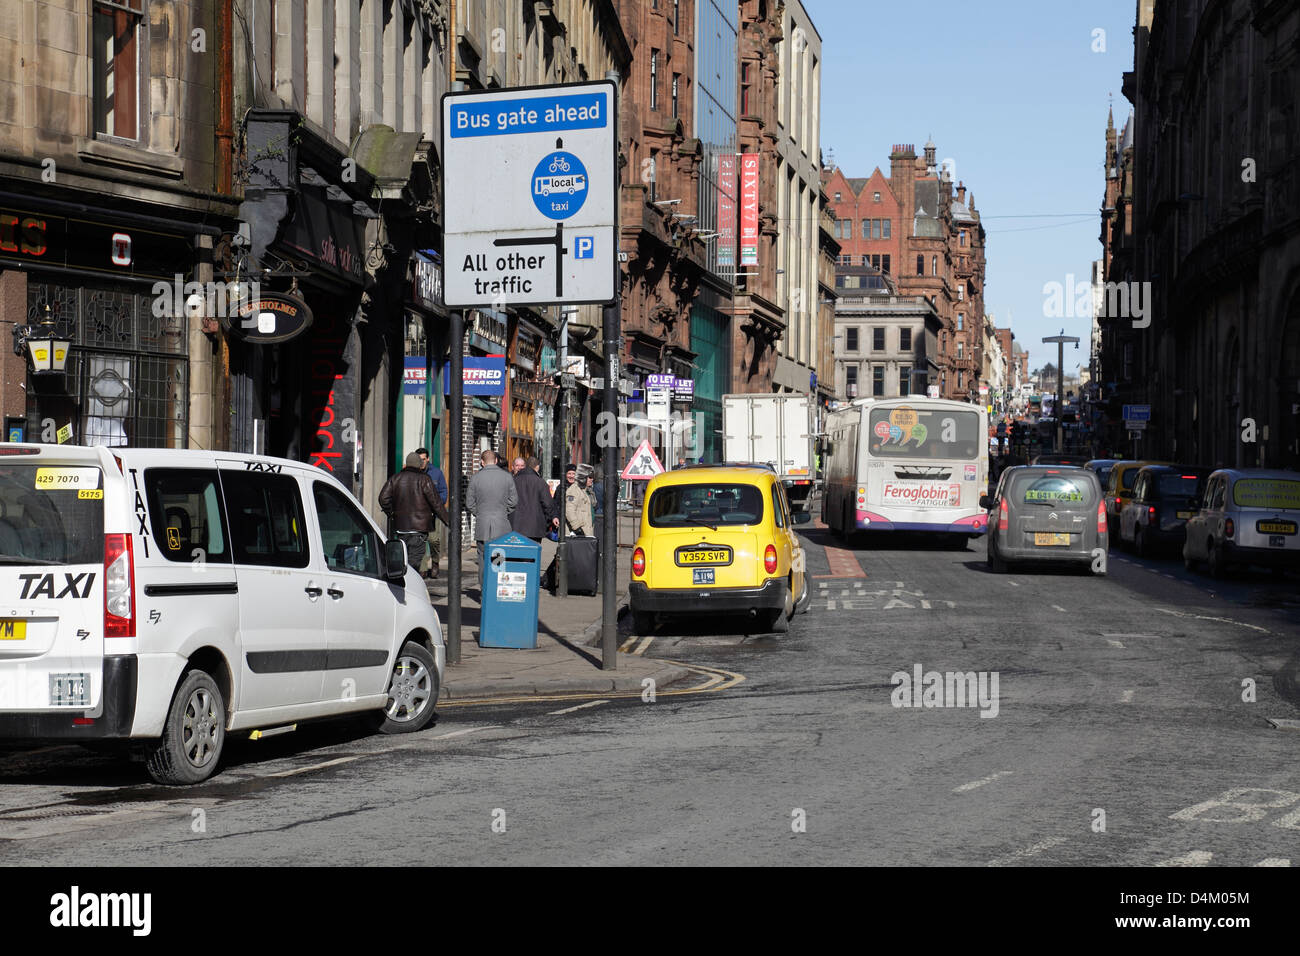 View North looking up Hope Street in Glasgow city centre, Scotland, UK - Stock Image